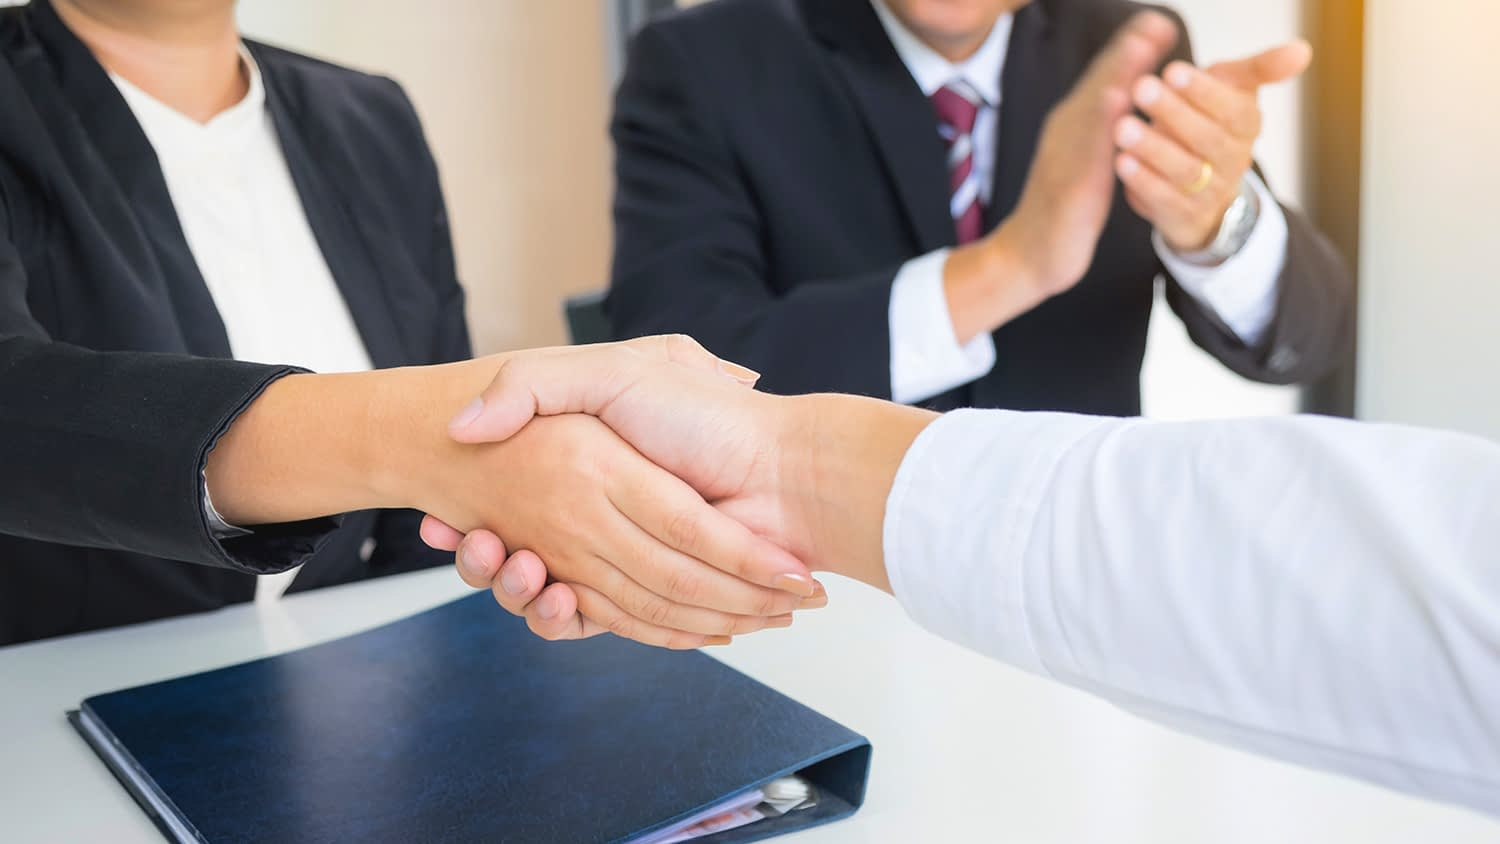 successful business team shaking hands with eachother in the office